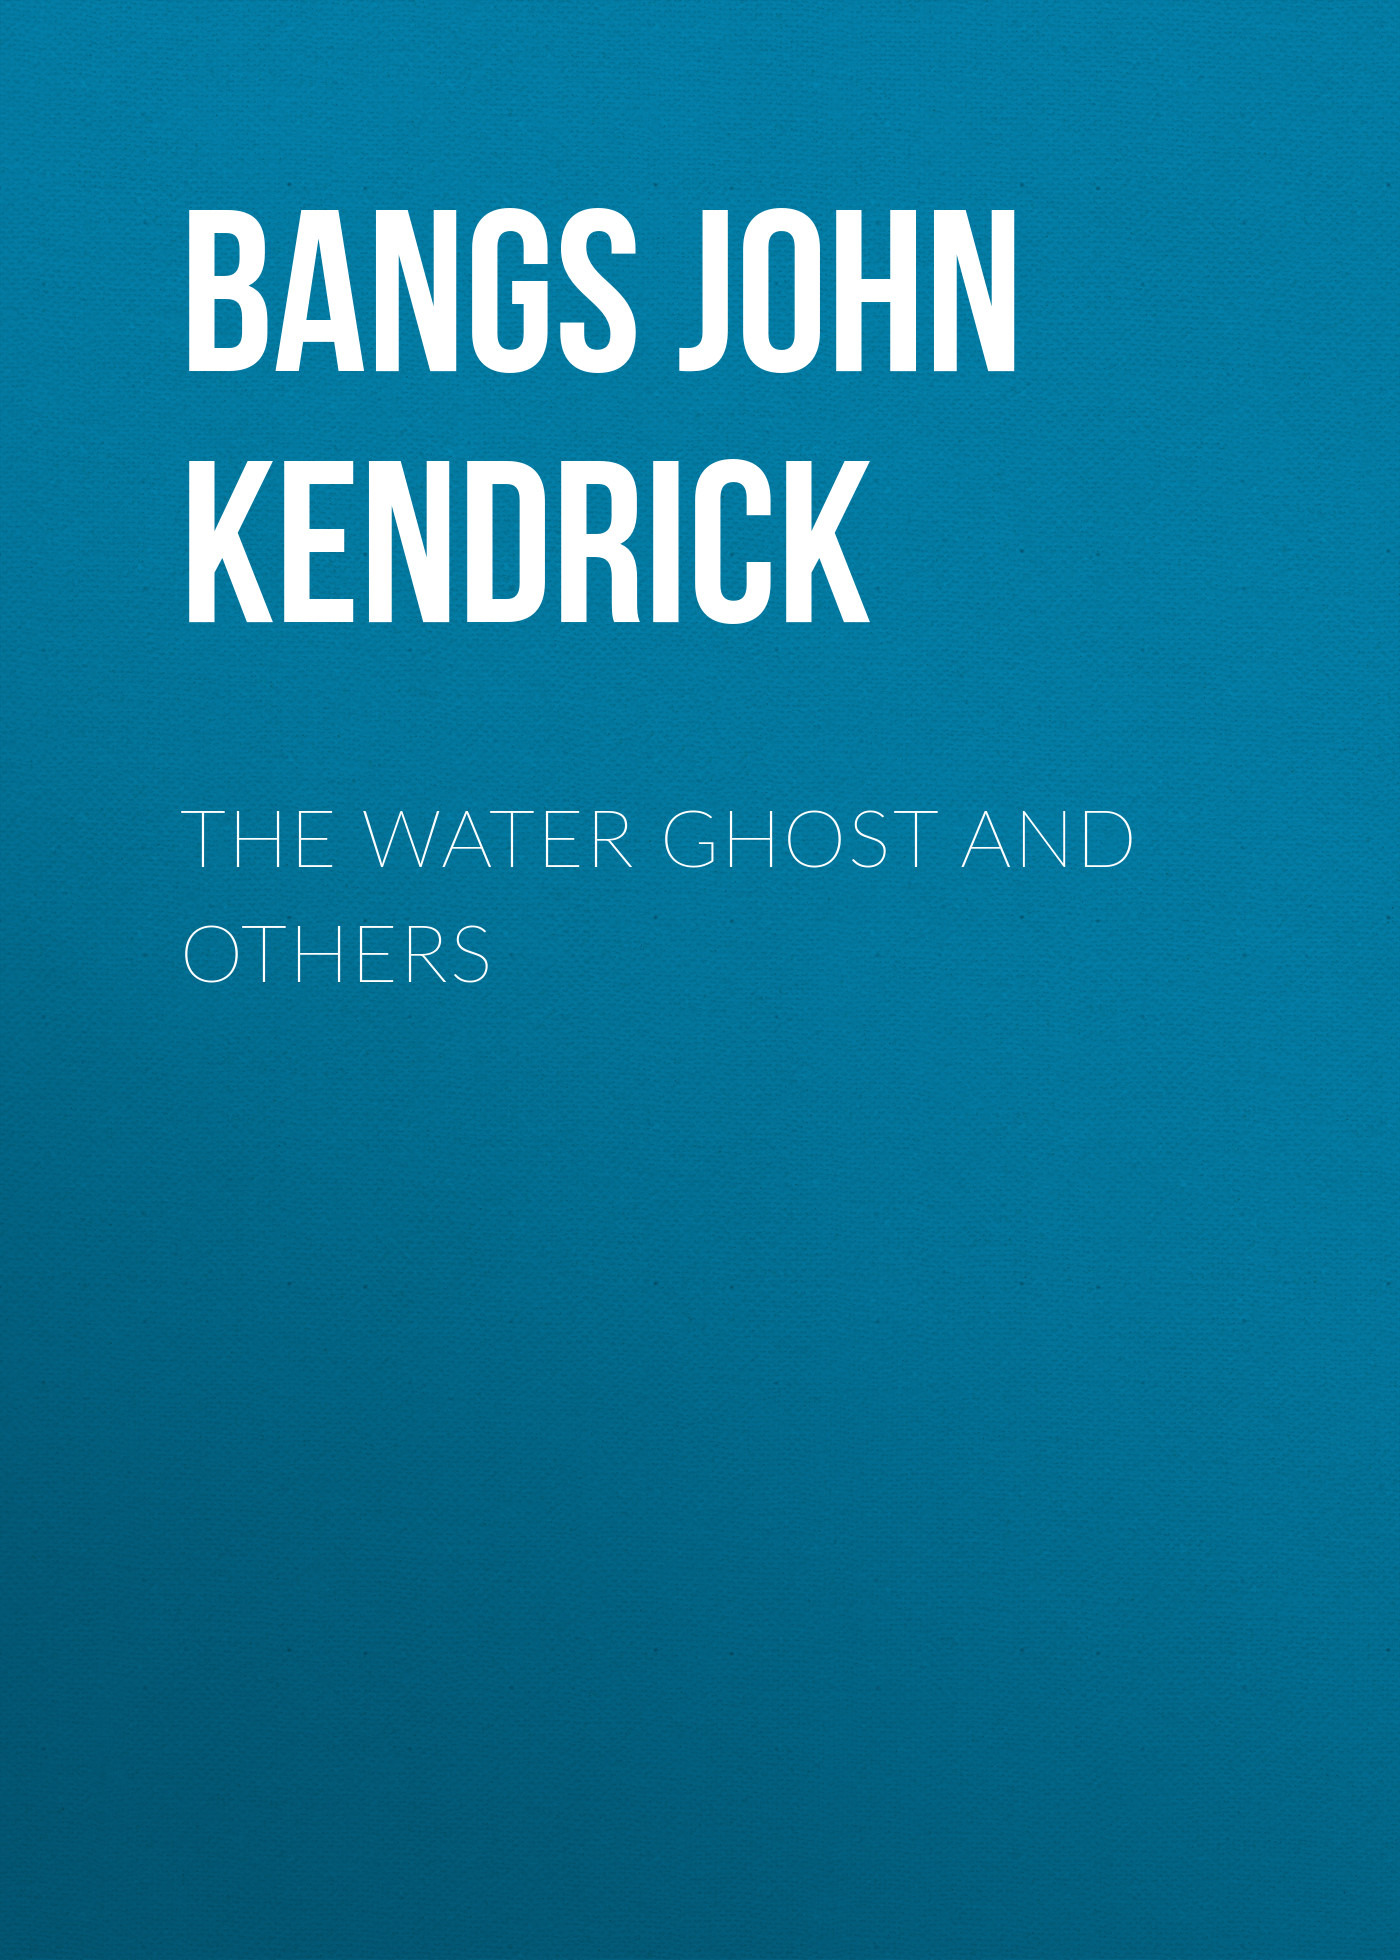 цена на Bangs John Kendrick The Water Ghost and Others